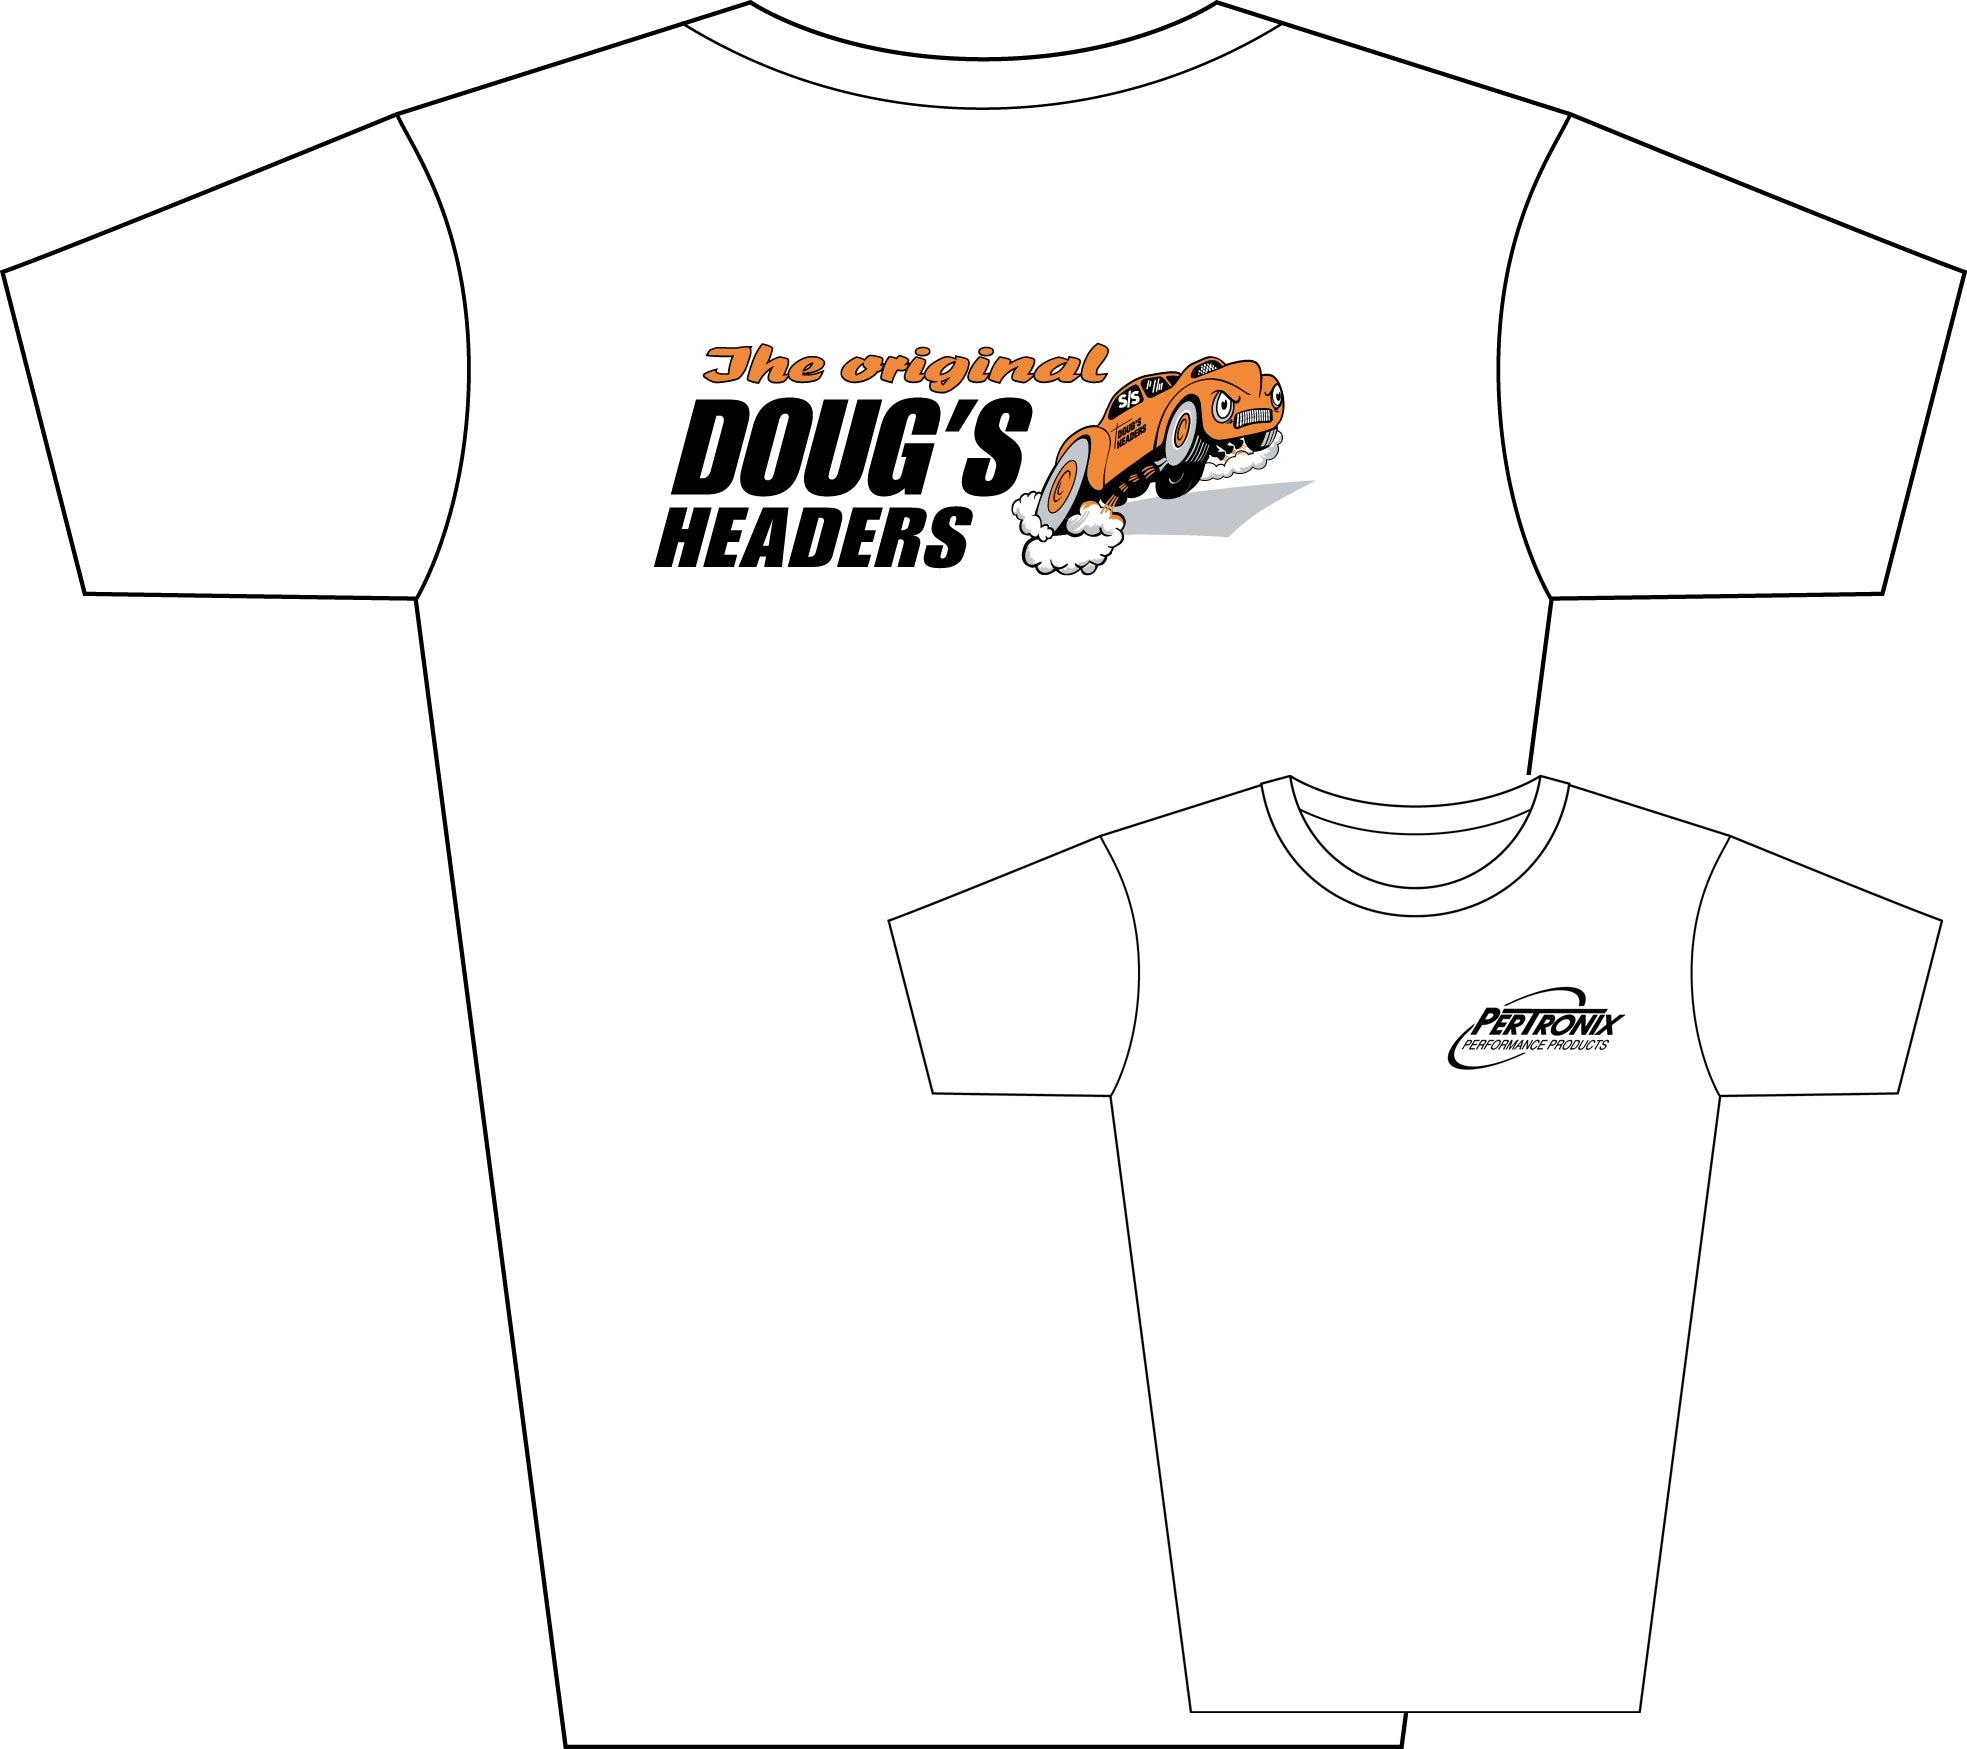 Doug's Headers TS103 Tee Shirt White XL